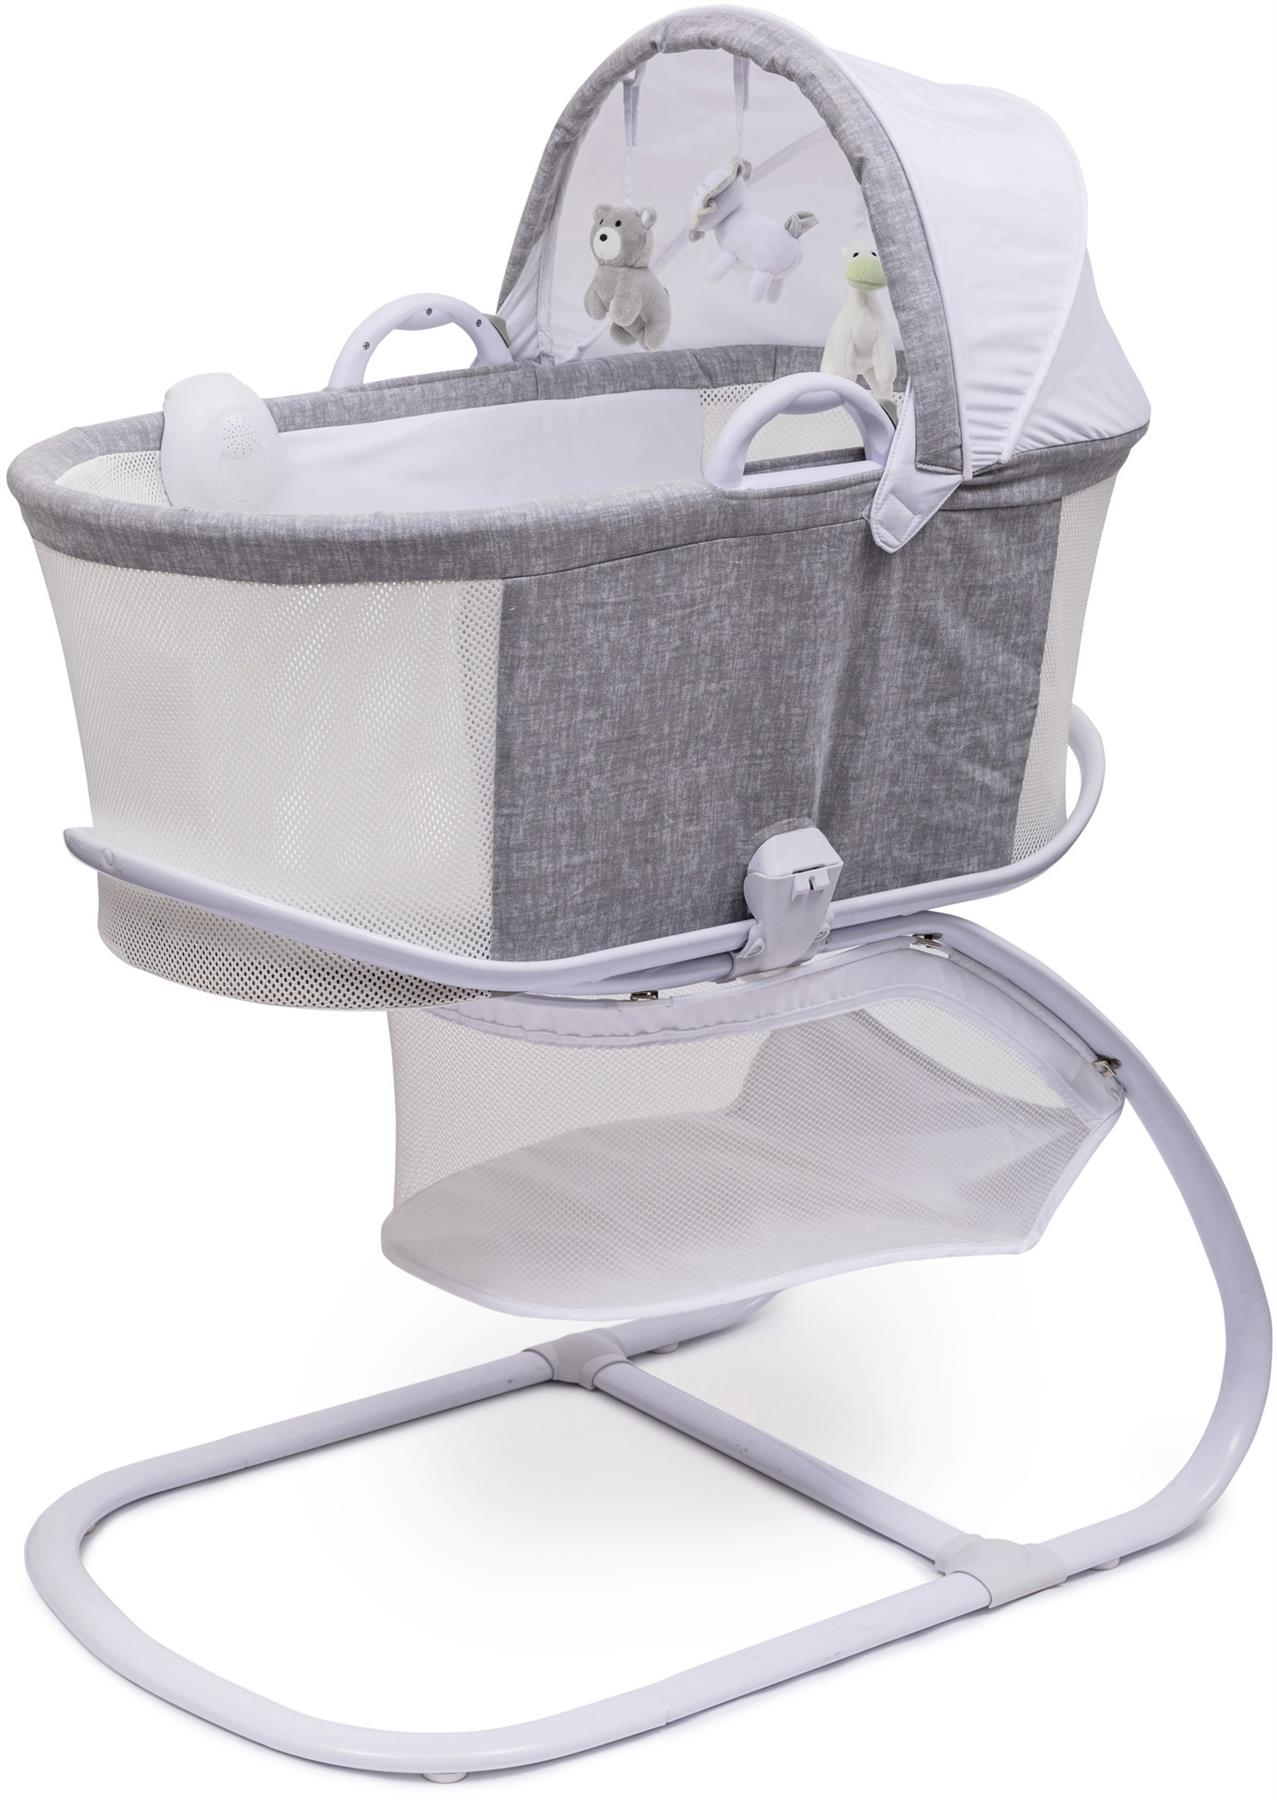 Baby Bassinet Moses Basket Details About Purflo Purair Breathable Bassinet Marl Grey Baby Moses Basket Cot